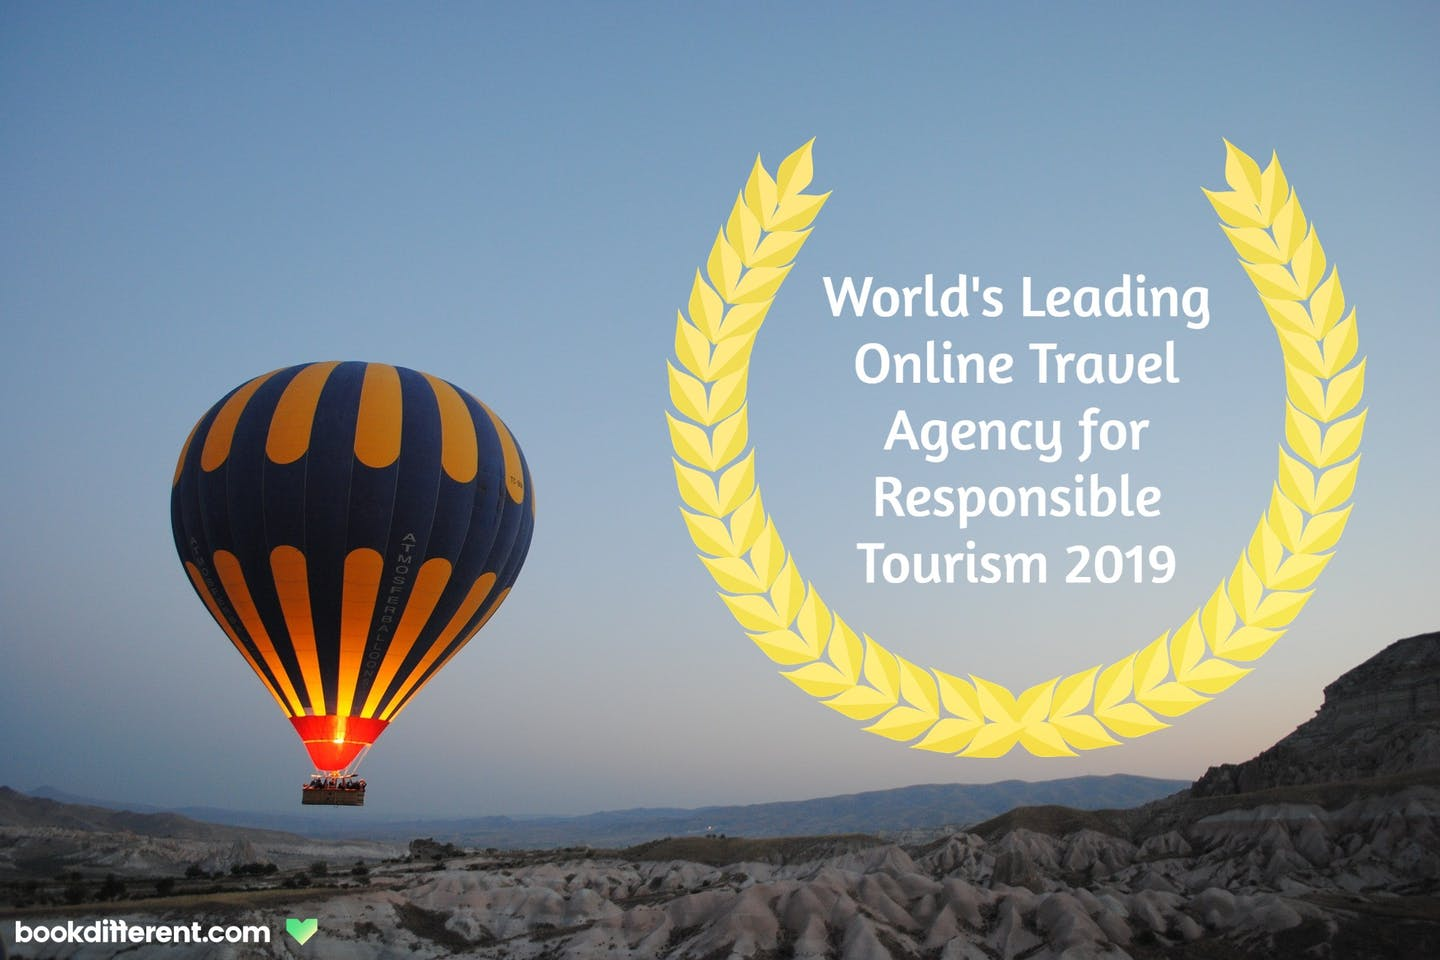 bookdifferent.com is World's Leading Online Travel Agency for Responsible Tourism